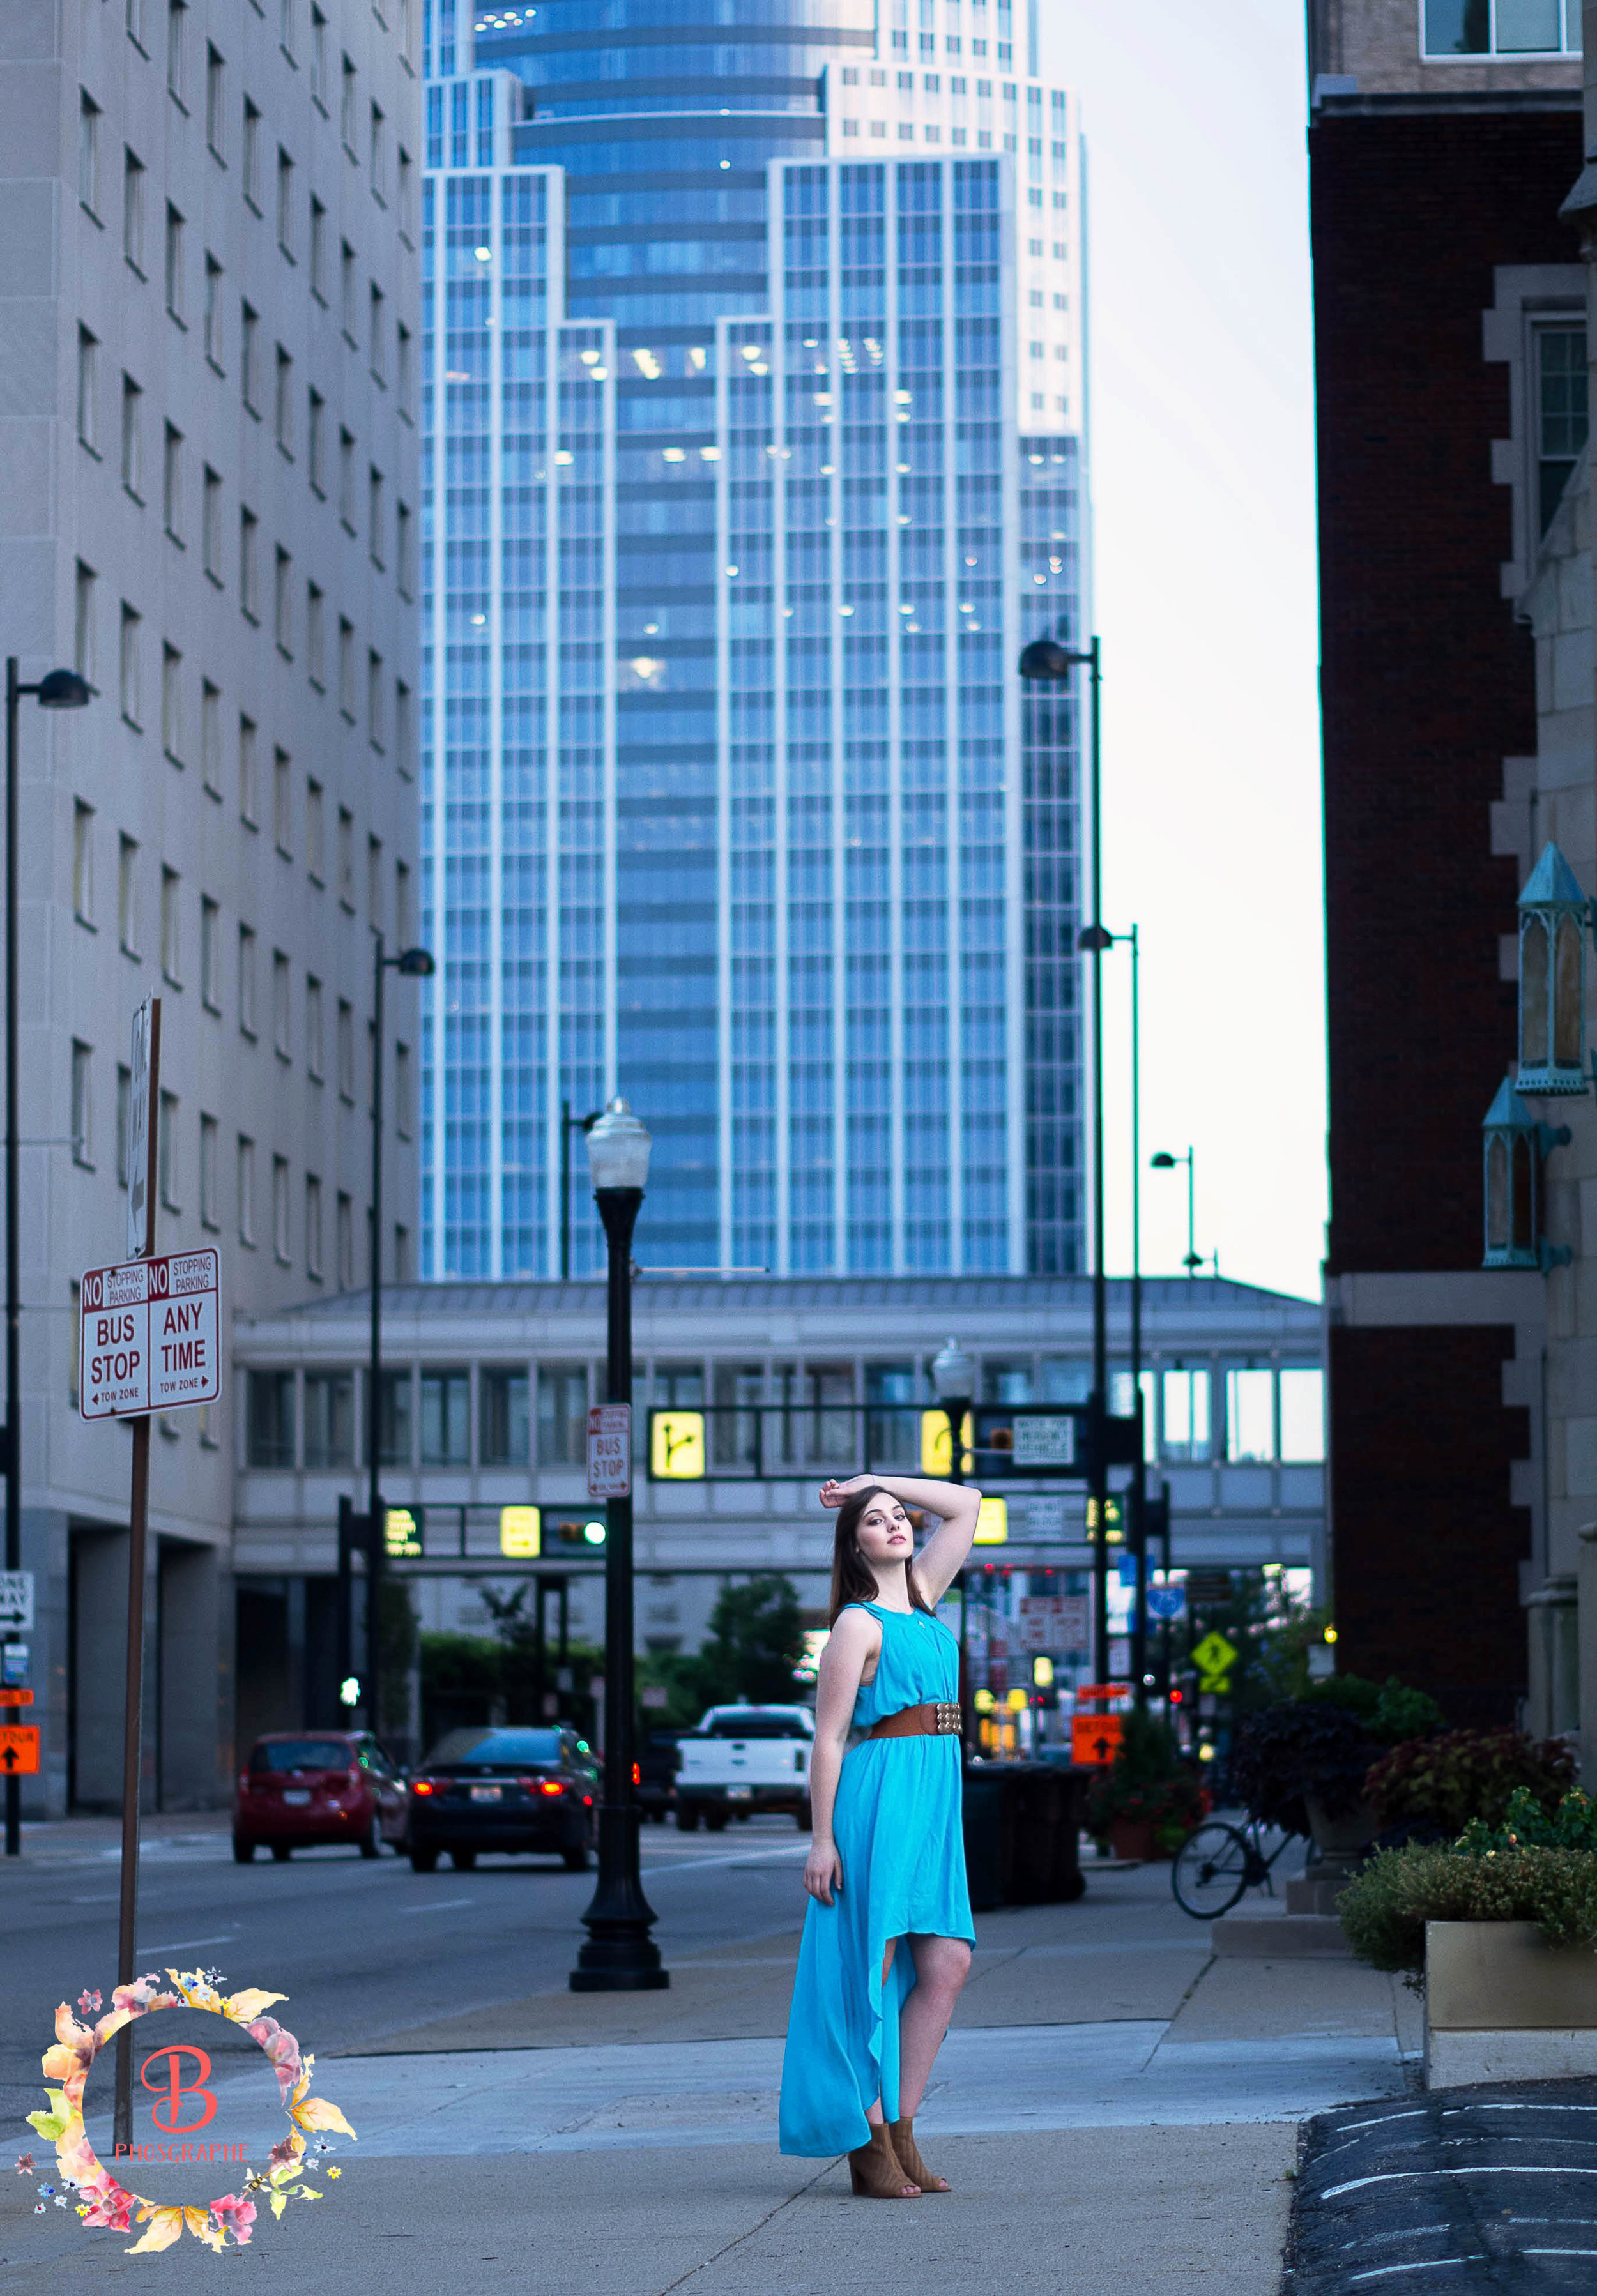 cincinnati senior photography, senior portraits, cincinnati, senior girl-4.jpg